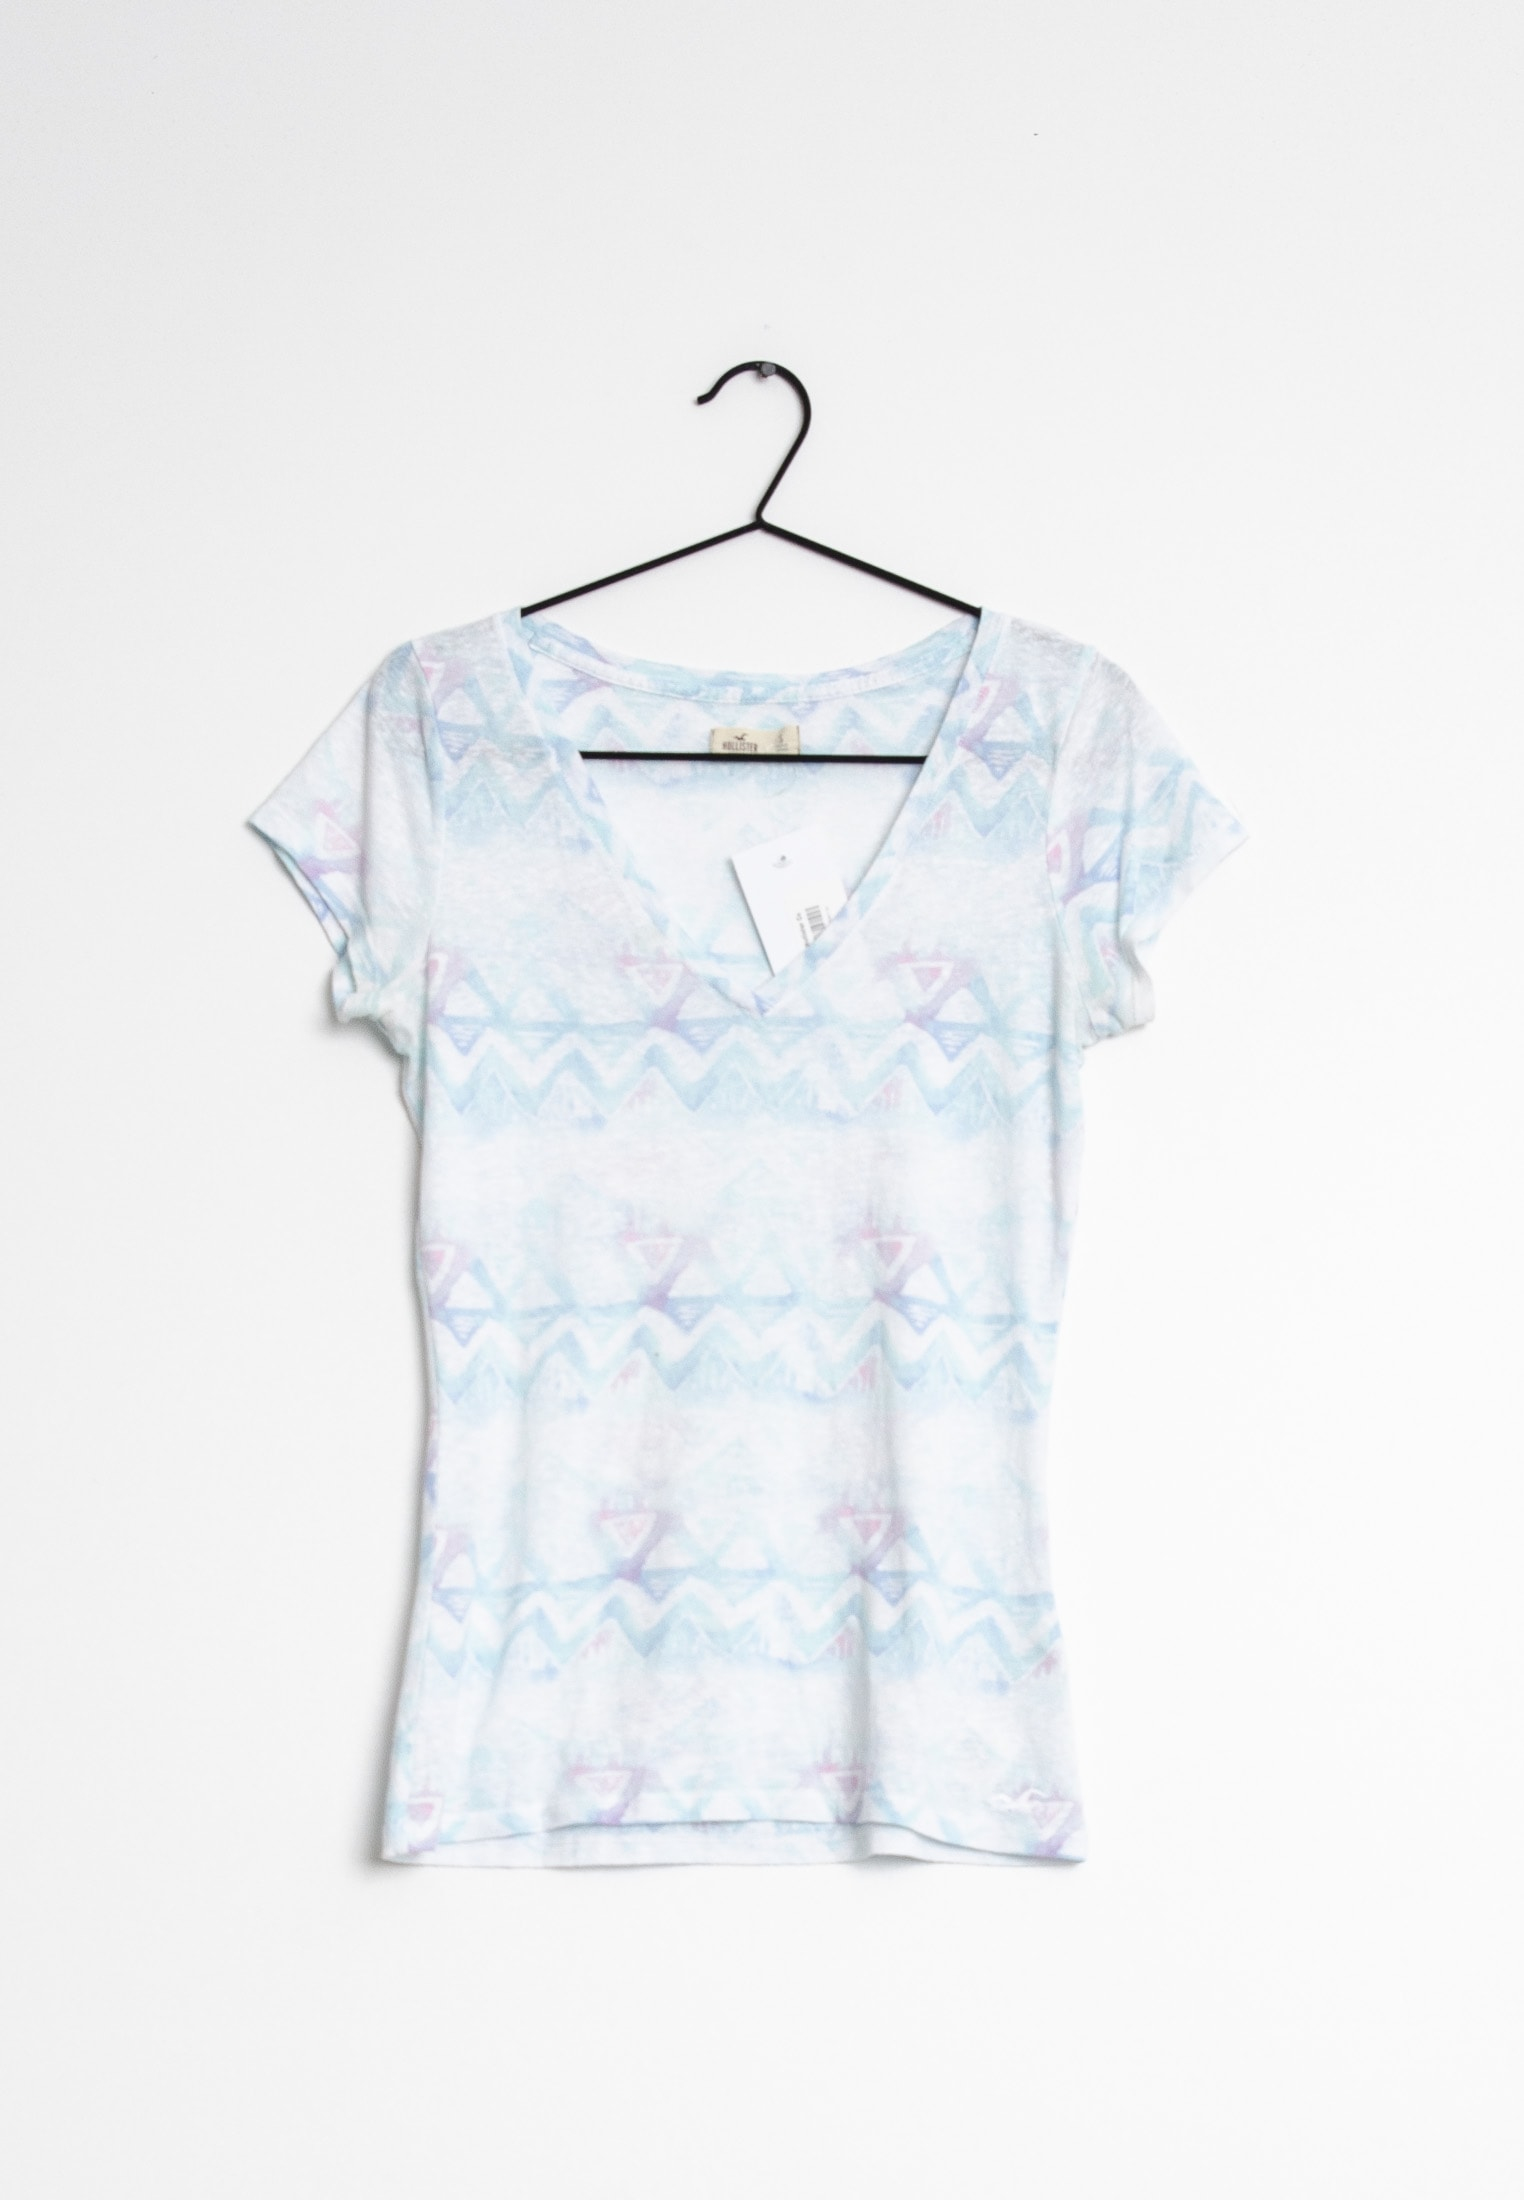 Hollister Co. T-Shirt Blau Gr.S